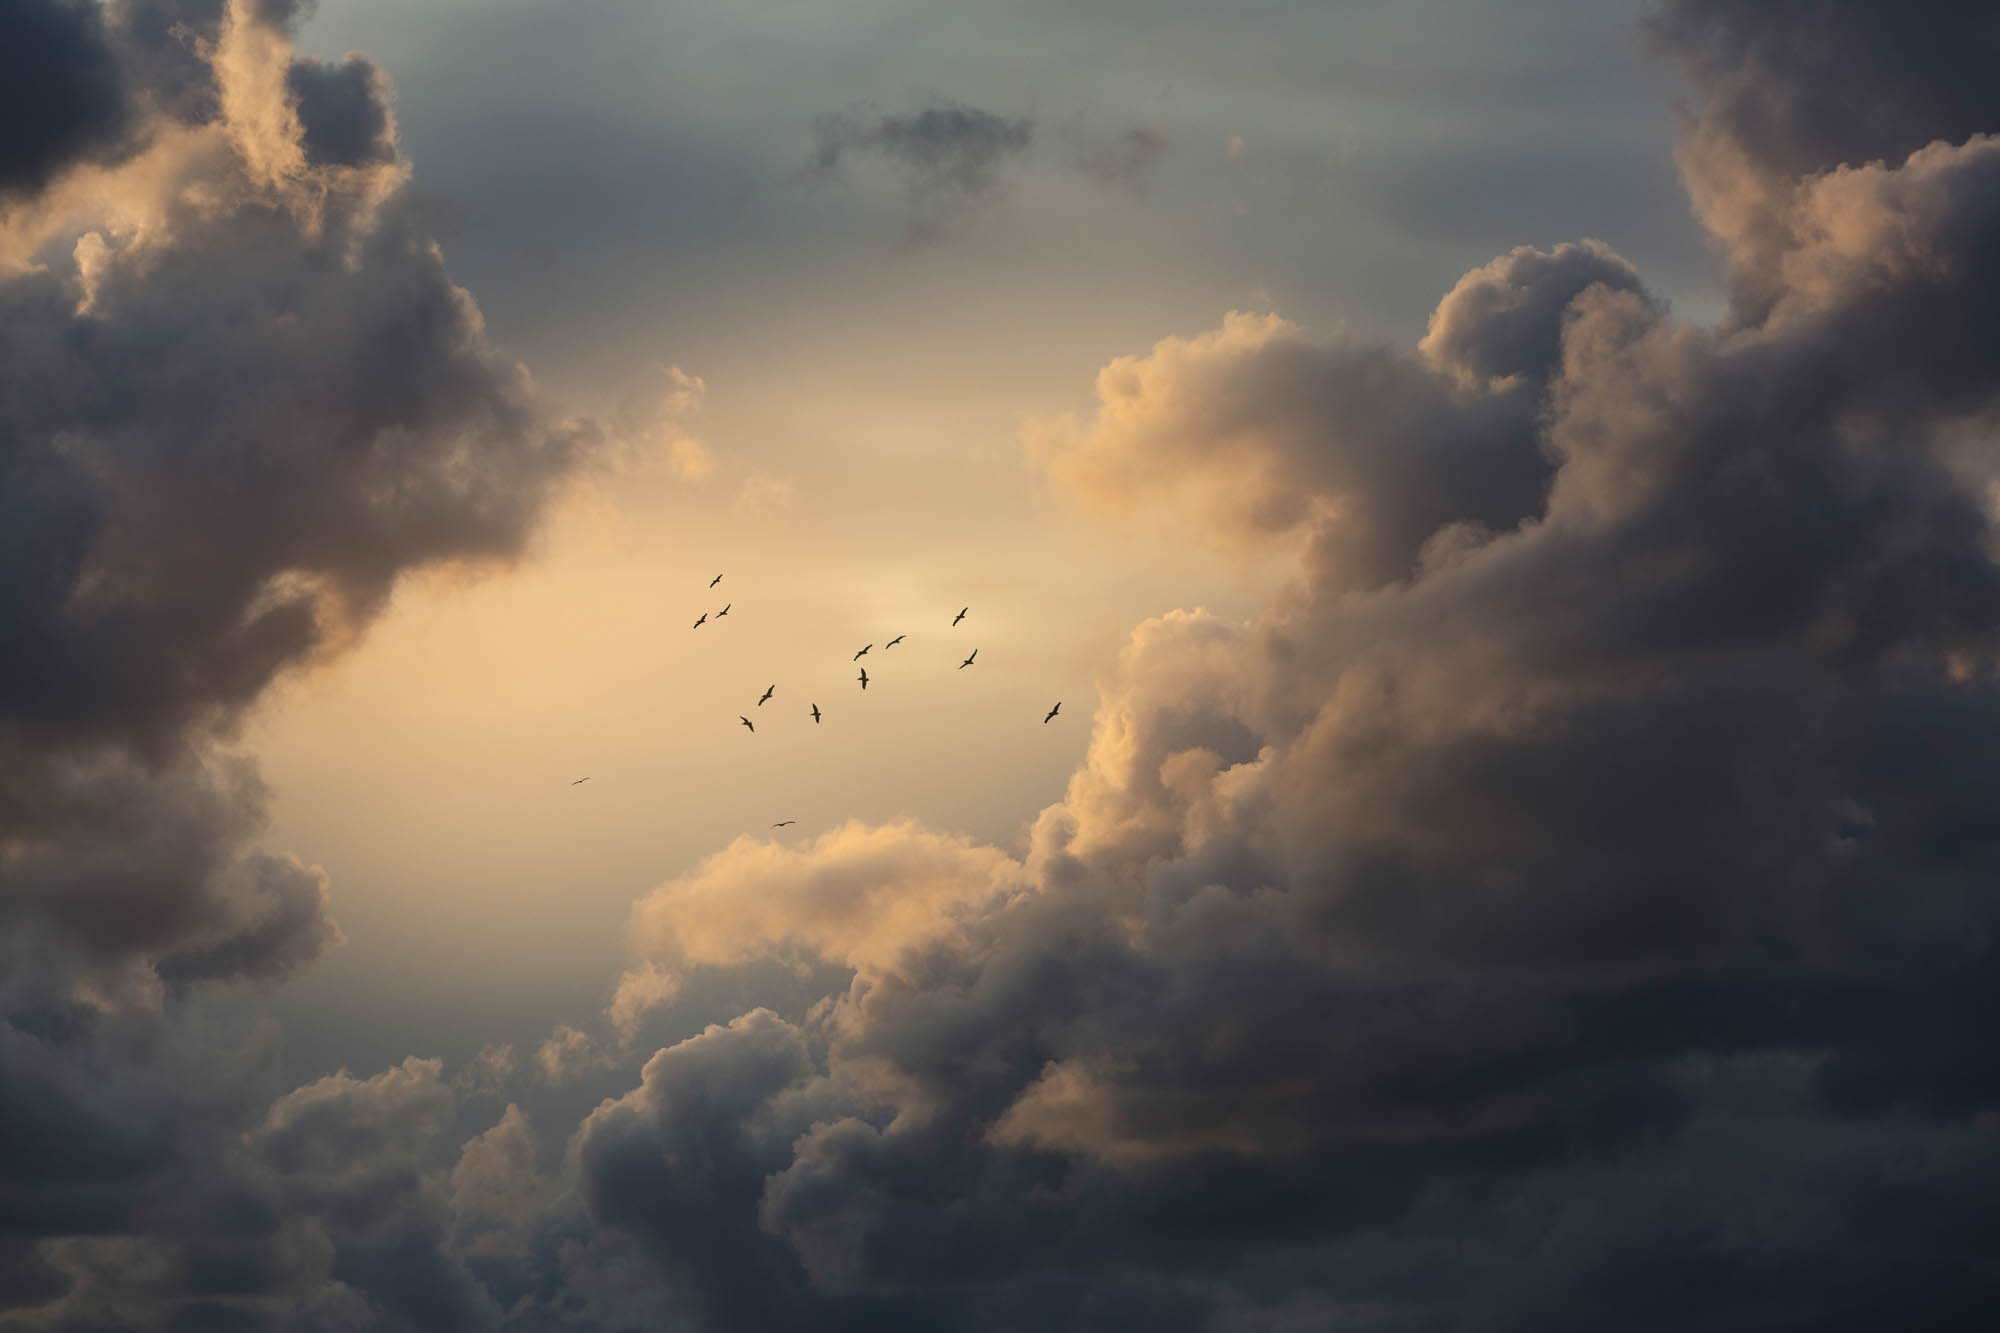 Birds heading south through the clouds at sunset